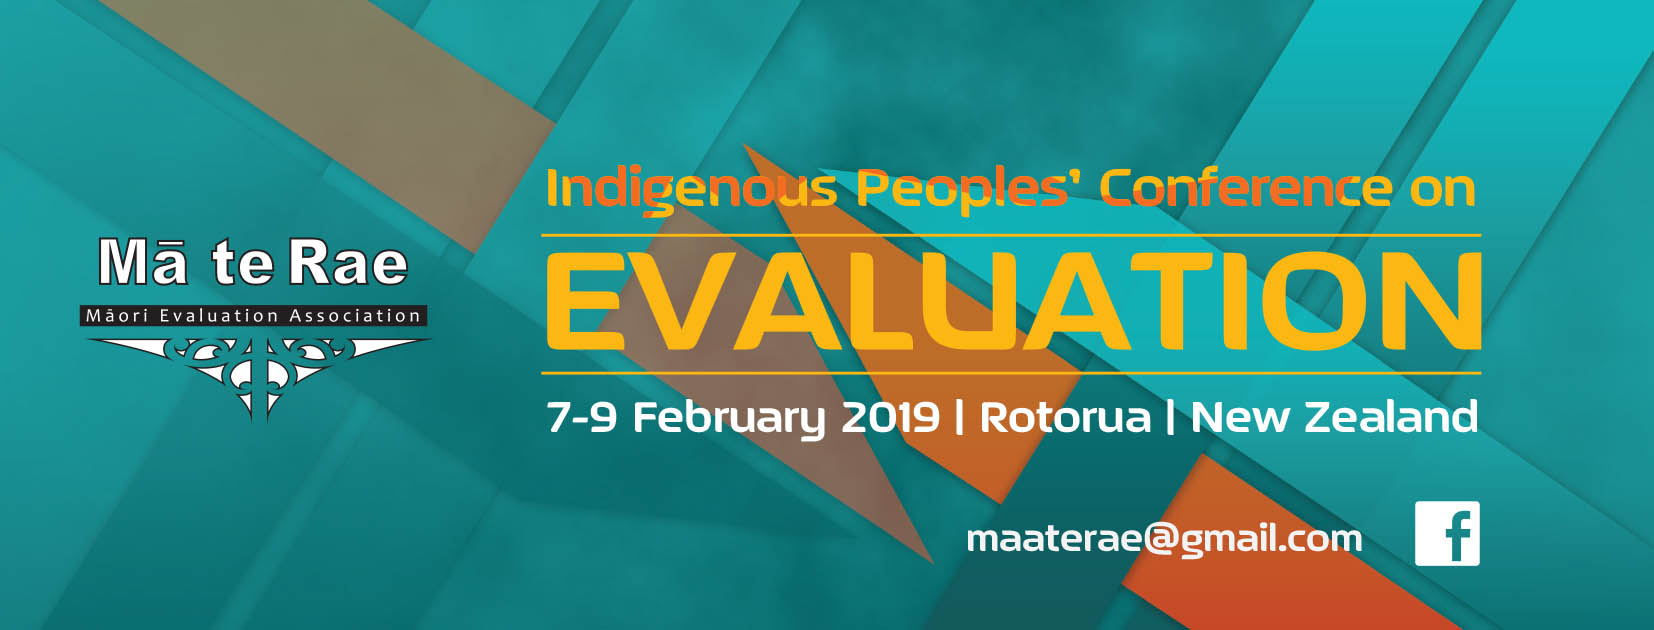 Mā Te Rae Indigenous Peoples' Conference on Evaluation logo